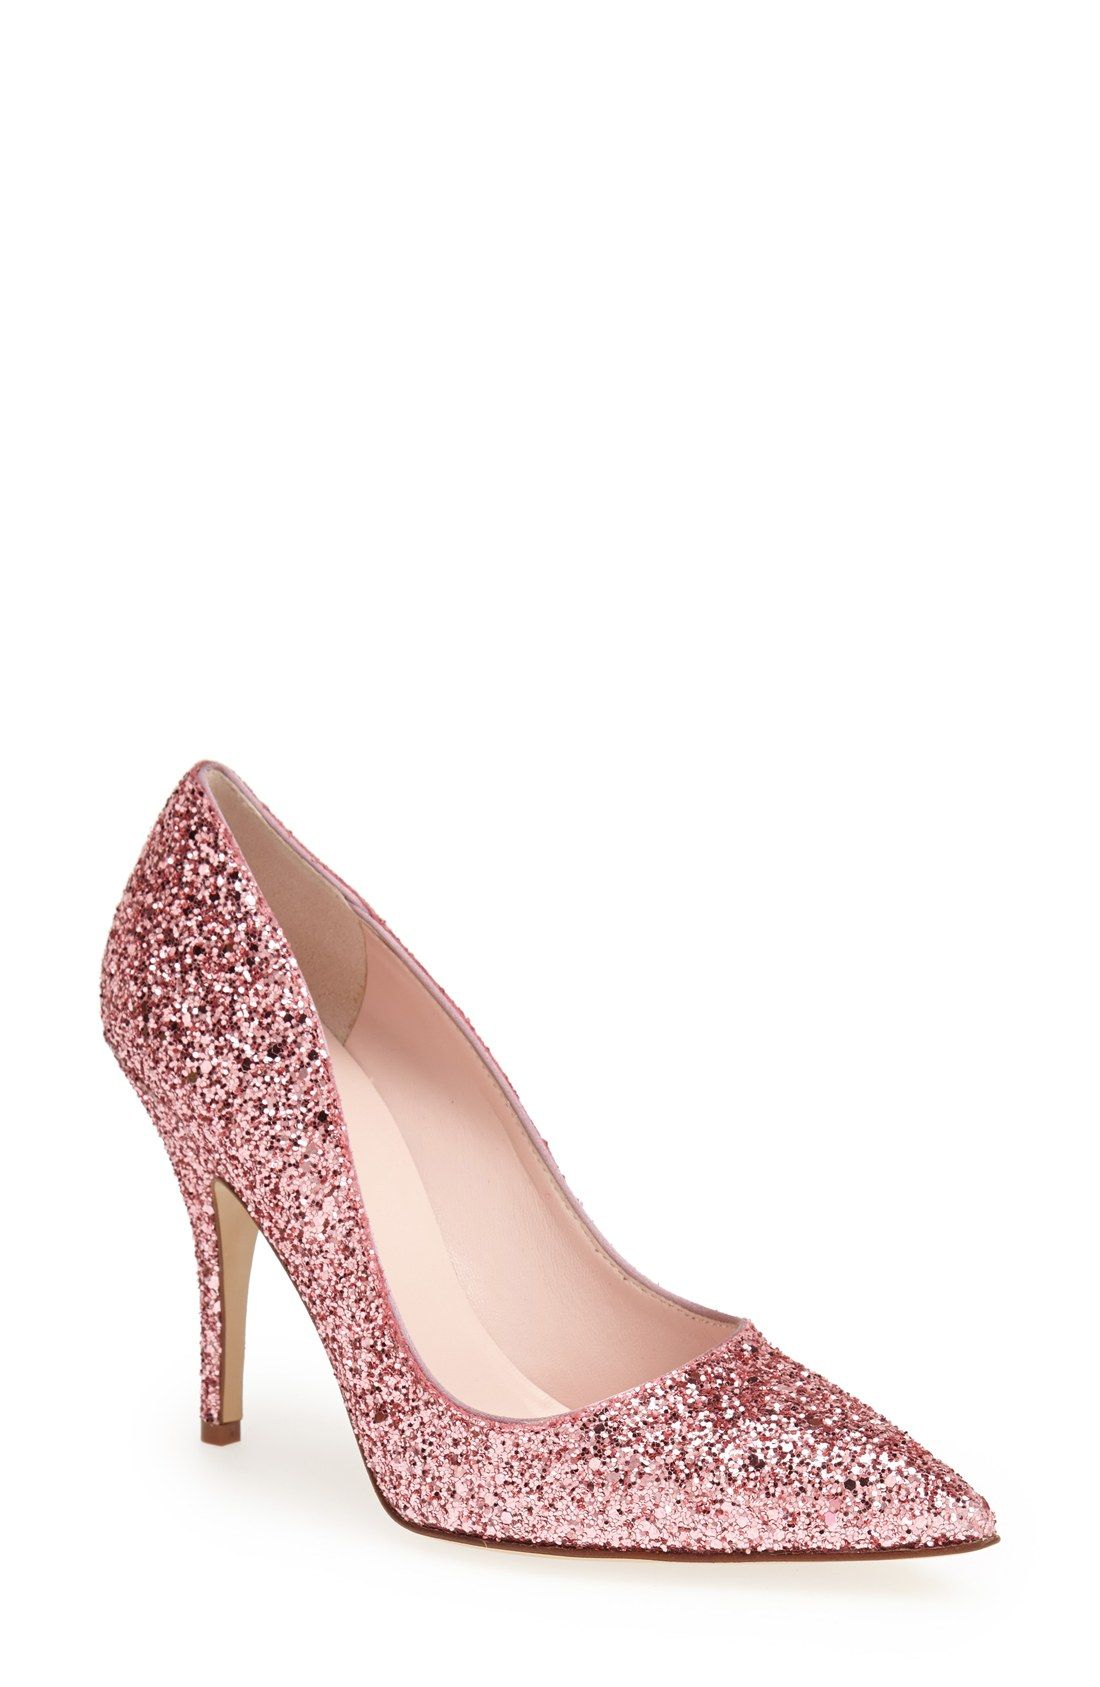 a126a73d0 Absolutely adore these rose pink glitter pumps. | Footwear ...